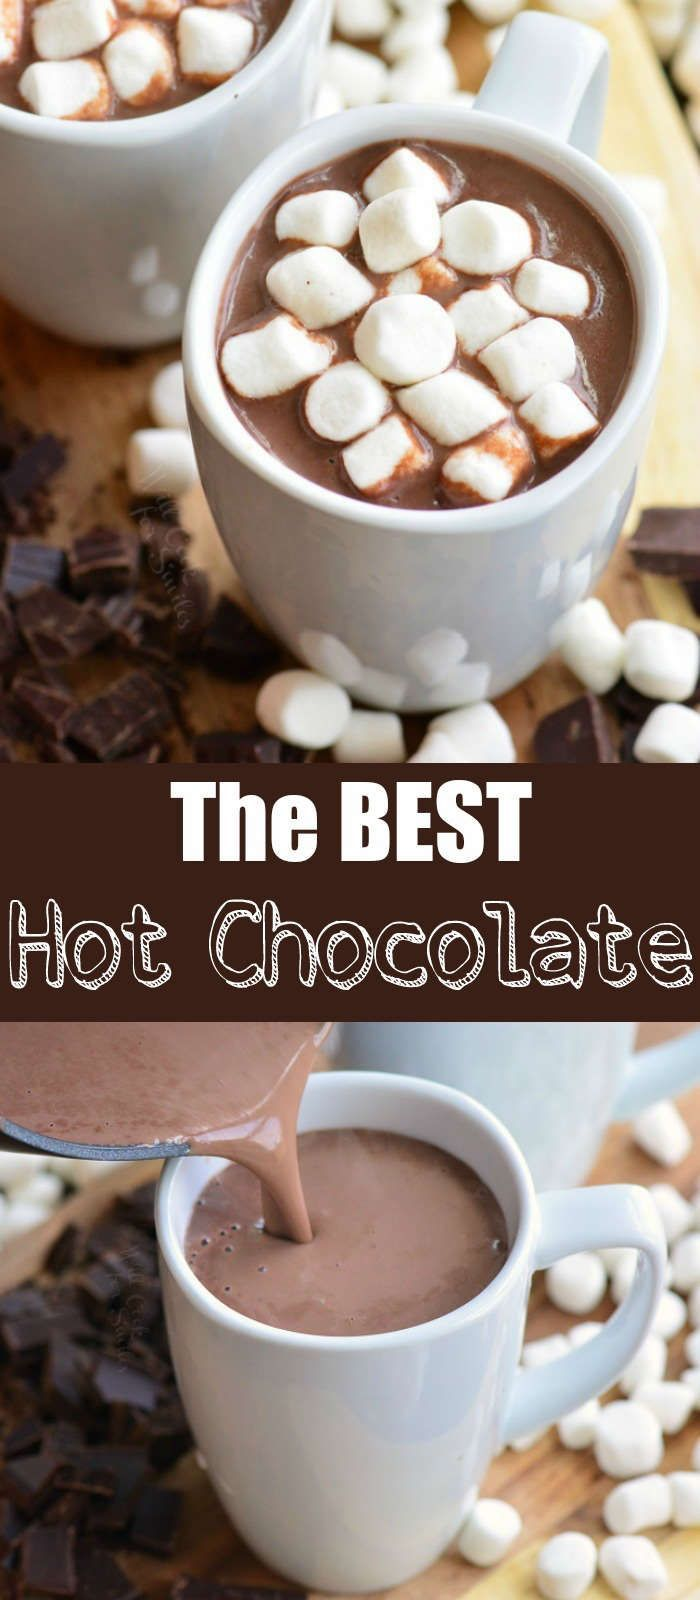 The BEST Homemade Hot Chocolate recipe. This is a rich, smooth, and creamy hot chocolate made with bittersweet chocolate, cocoa powder, milk, and a splash of vanilla extract. #drink #hotchocolate #chocolate #hotcocoa #hotdrink